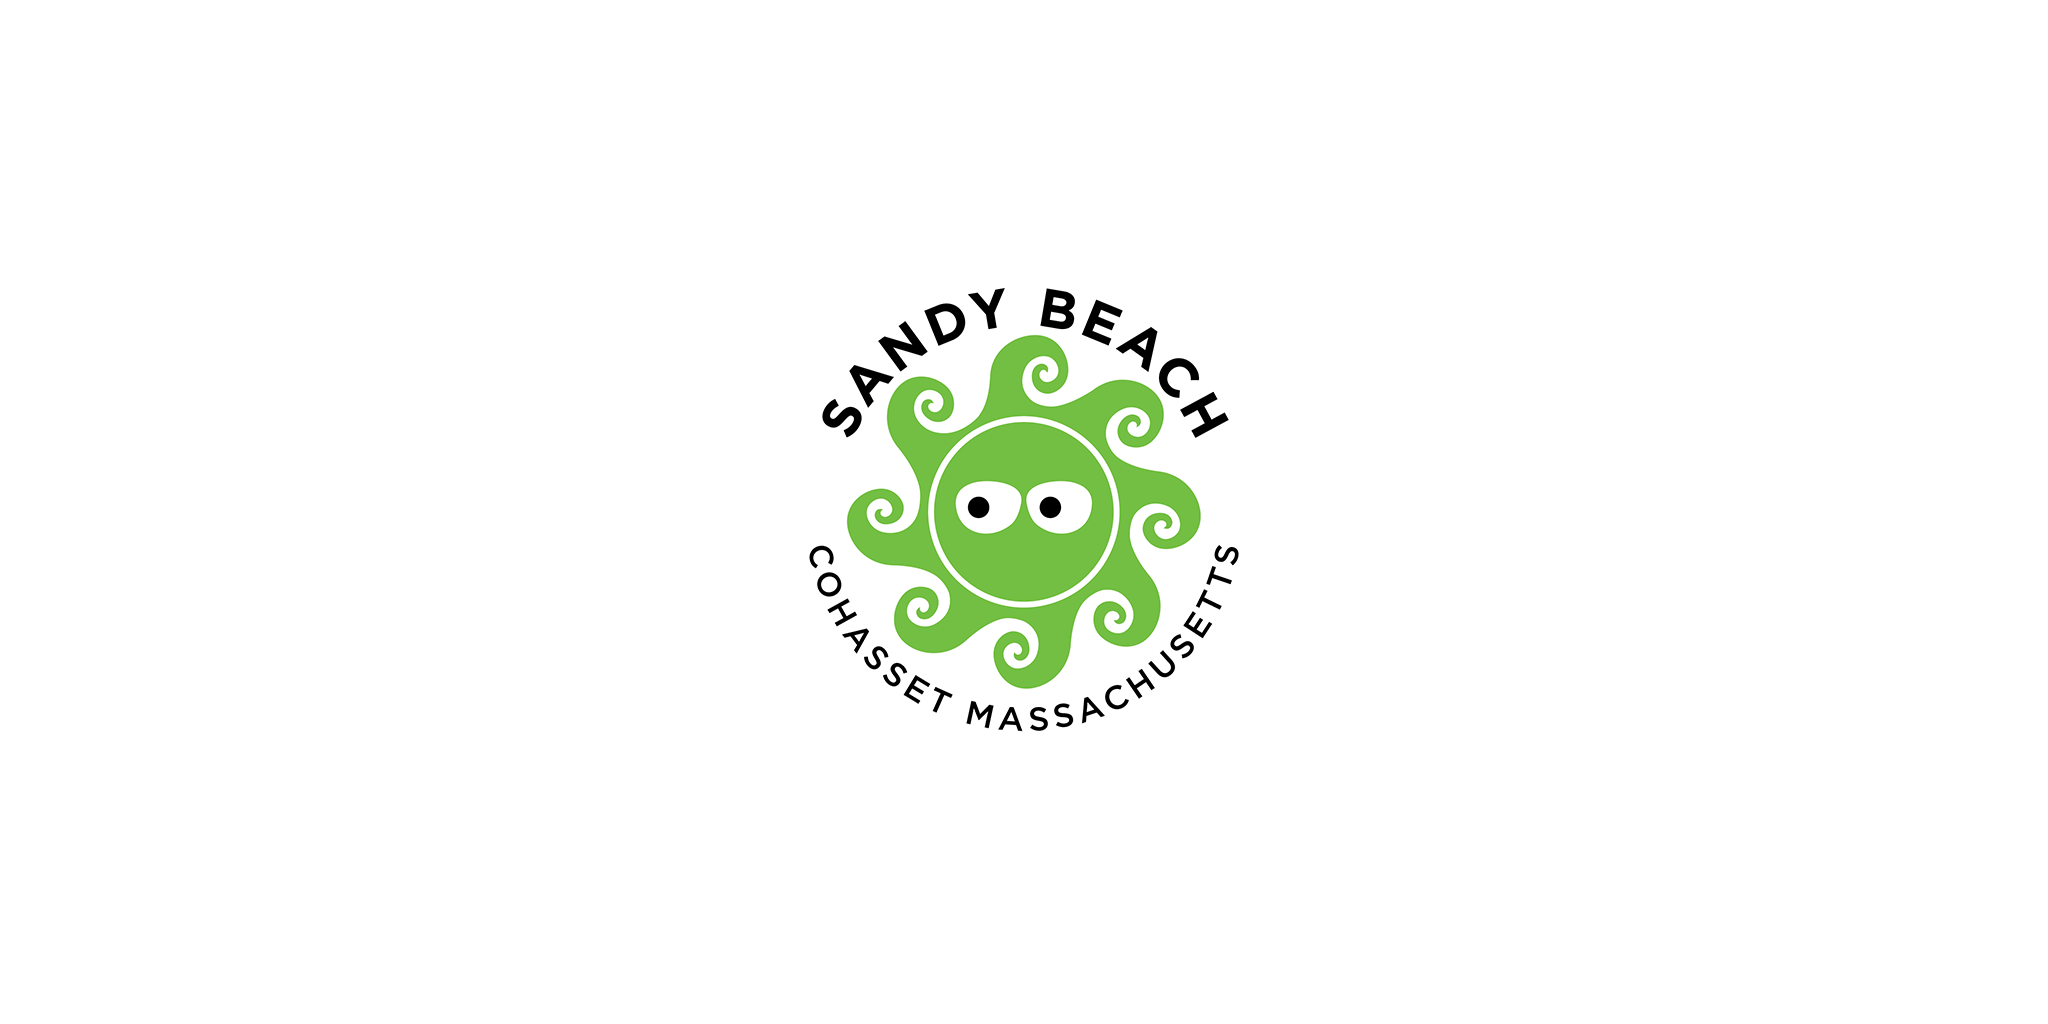 Sandy_Squid_New_Work_060116.png